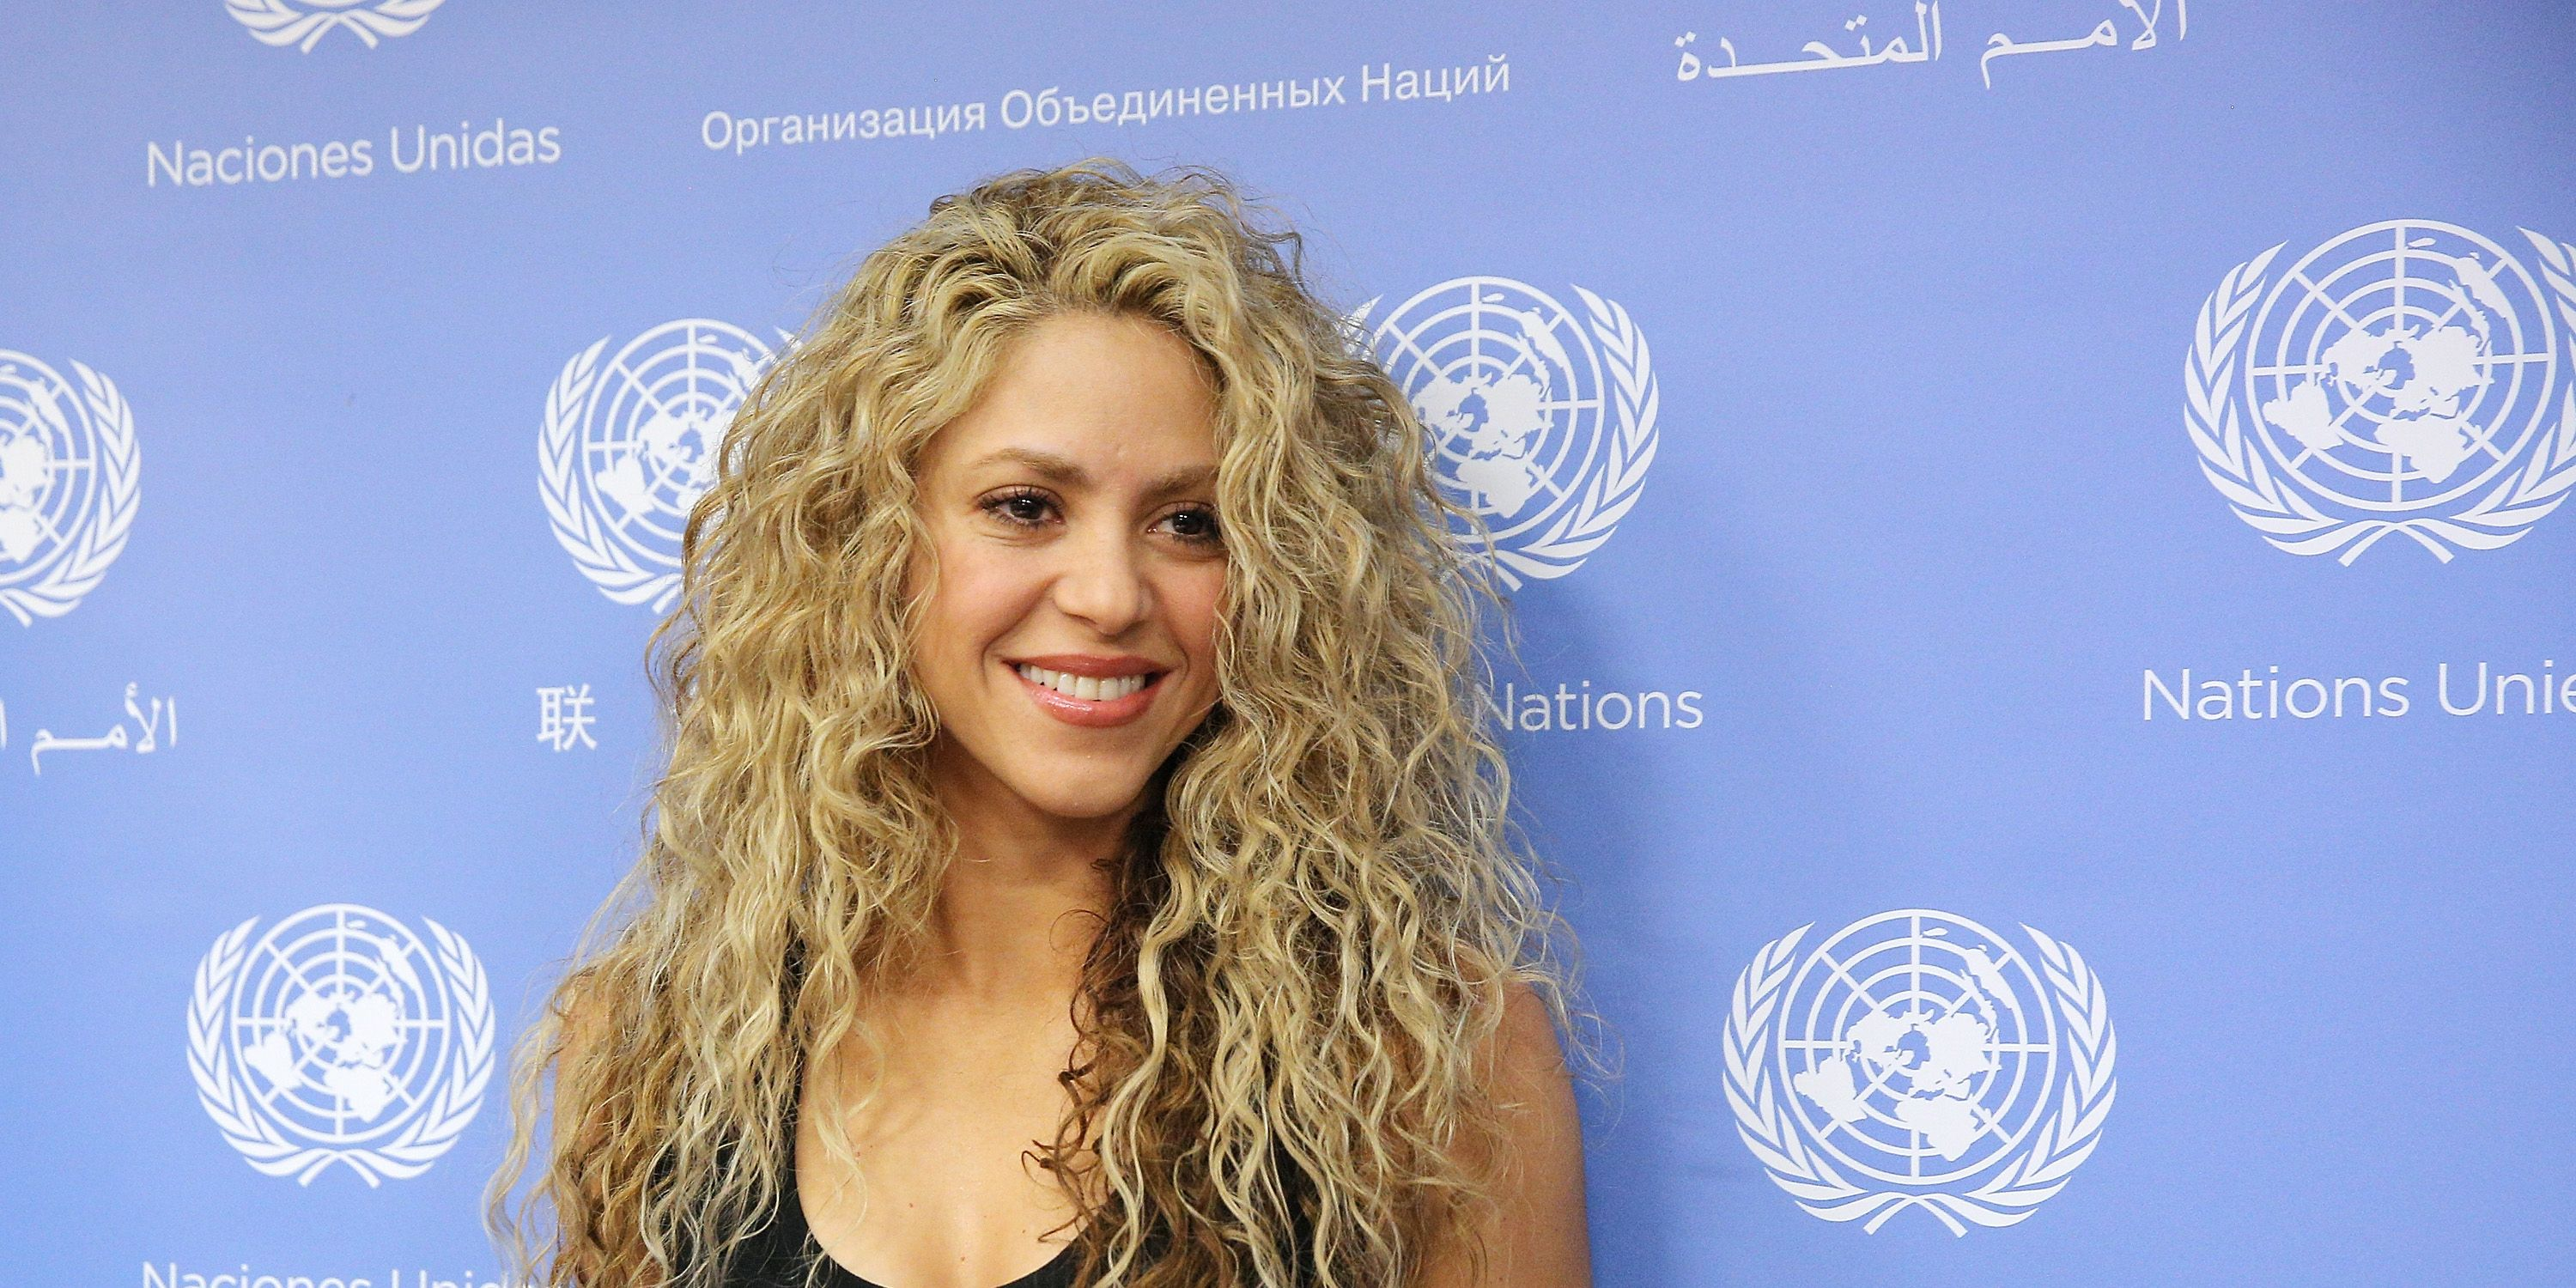 Singer Shakira greets the press after a press conference following the Meeting Of The Minds: Investing In Early Childhood Development As The Foundation For Sustainable Development Meeting at United Nations on September 22, 2015 in New York City.